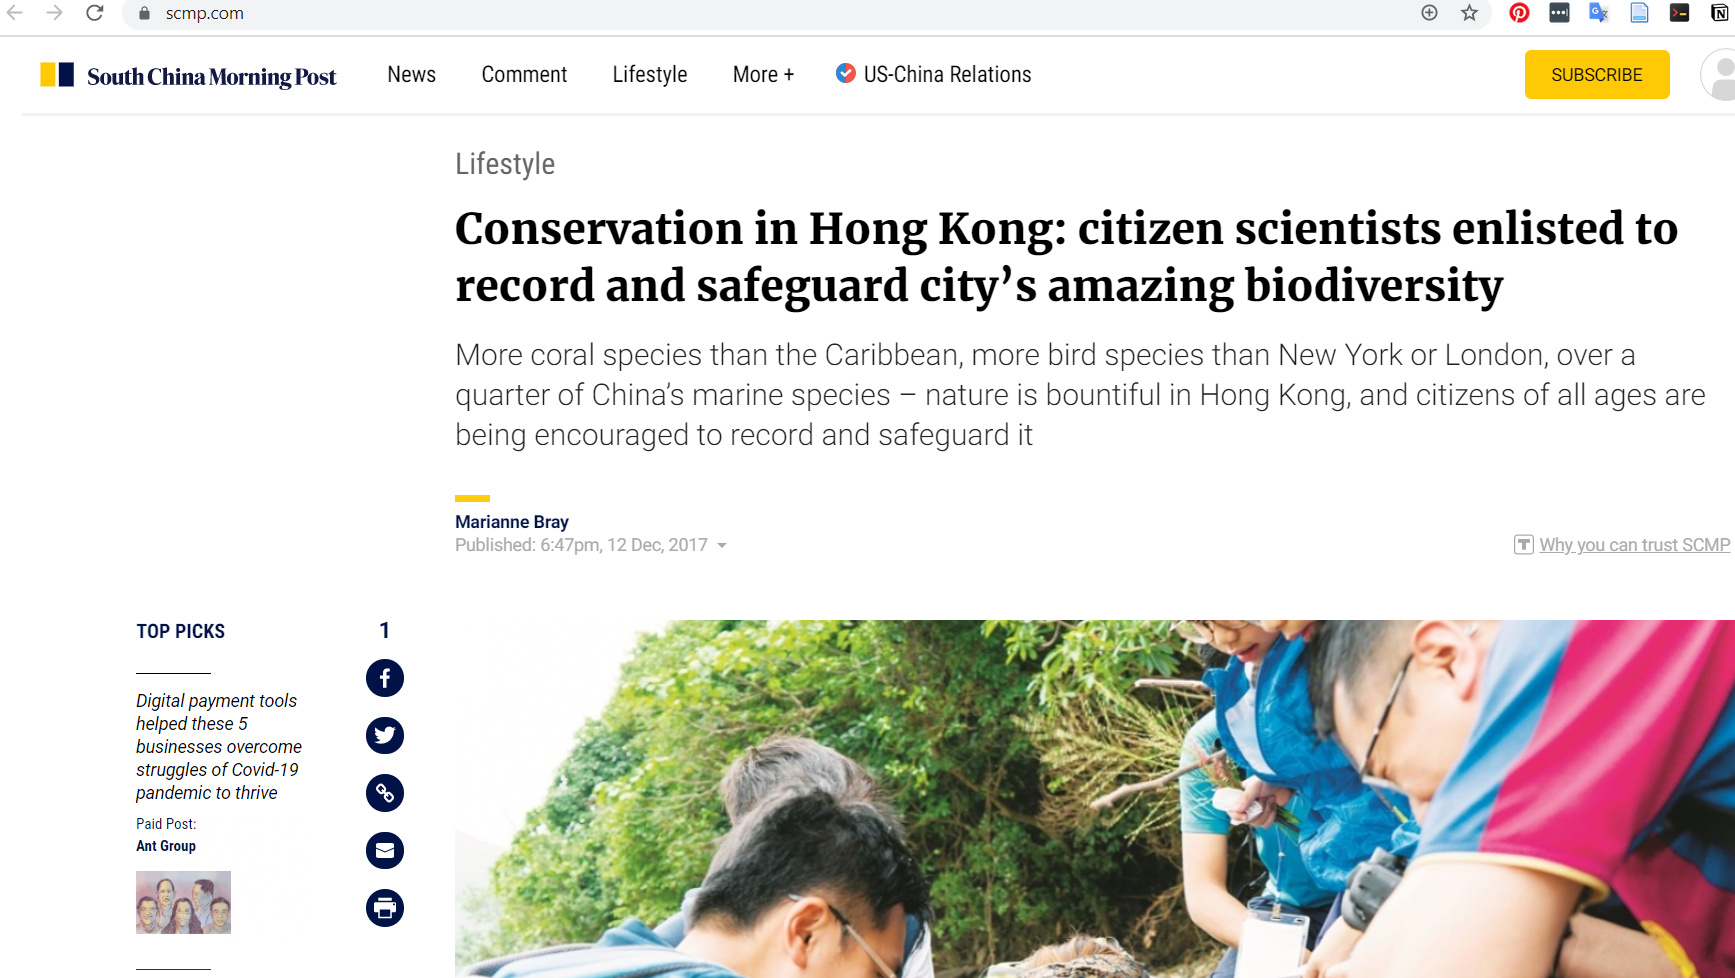 """""""Conservation in Hong Kong: citizen scientists enlisted to record and safeguard city's amazing biodiversity"""